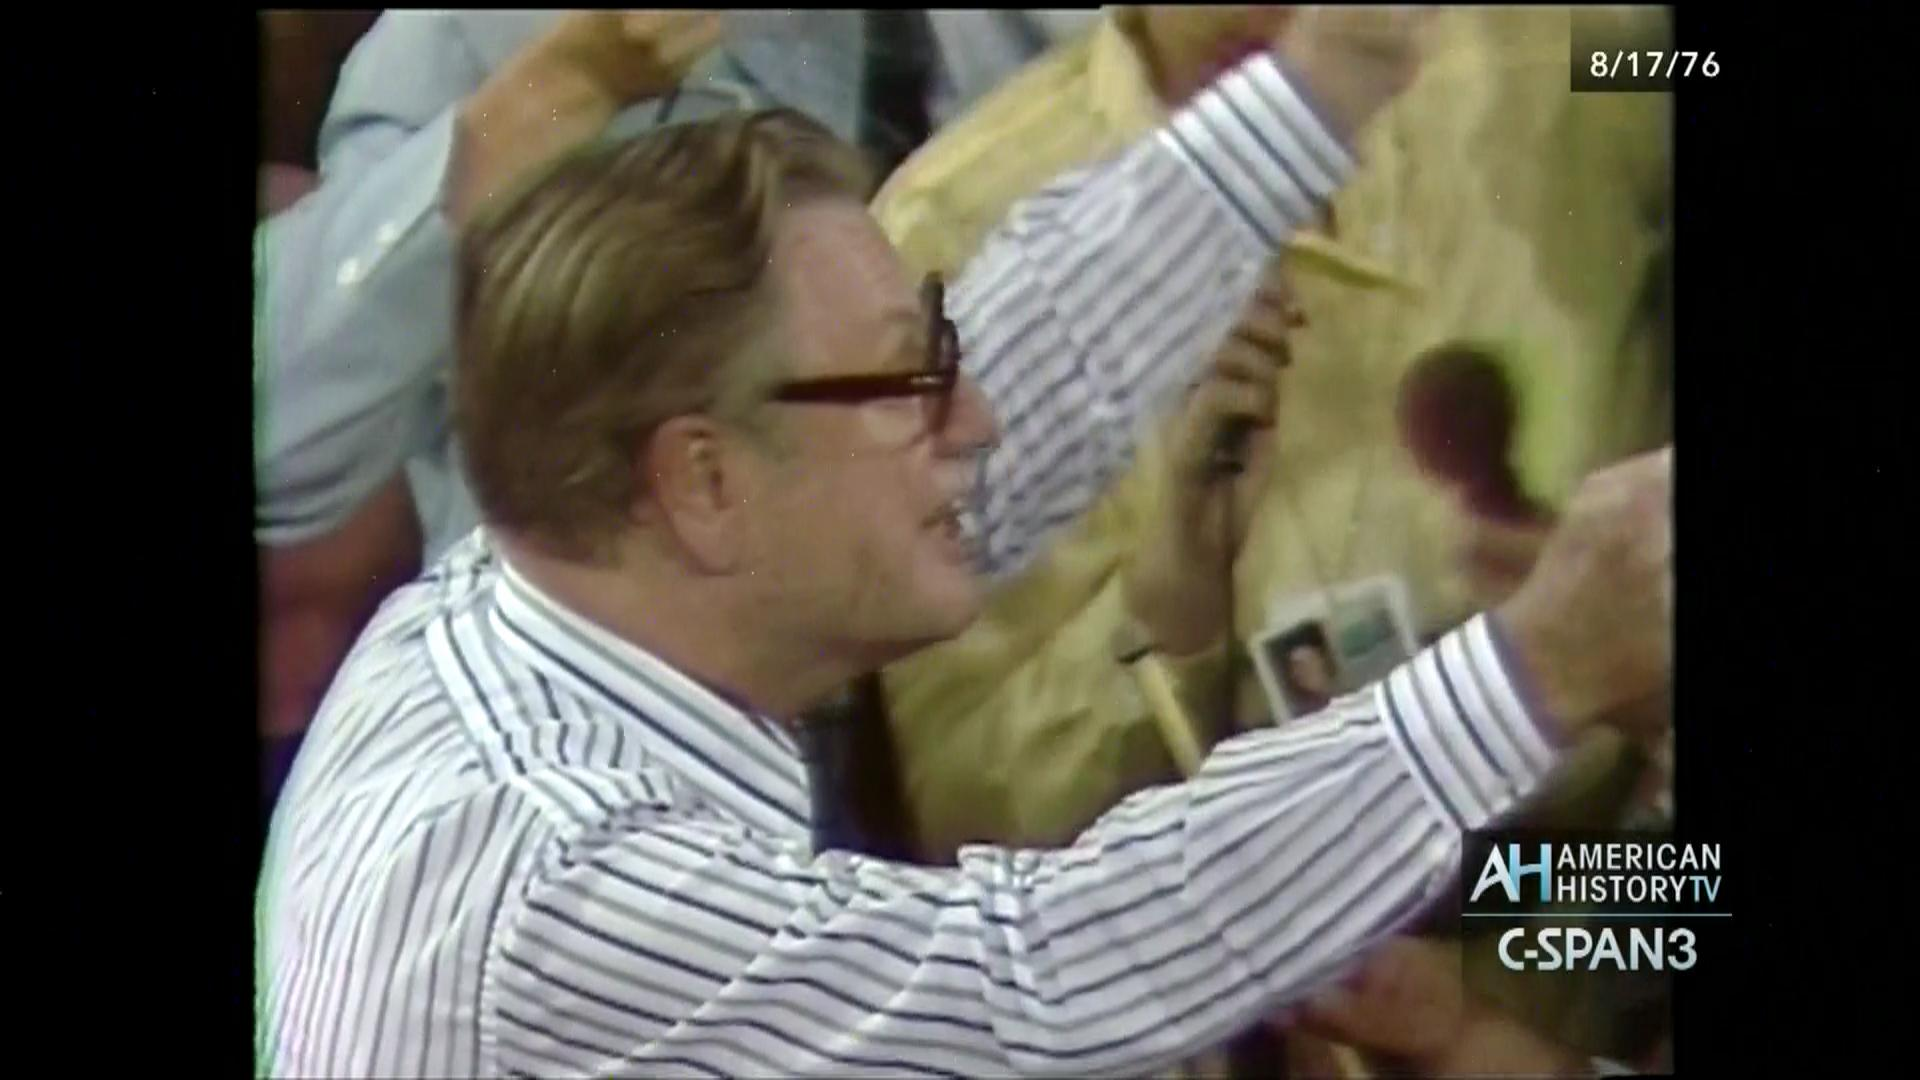 1976 republican national convention, aug 17 1976 | video | c-span